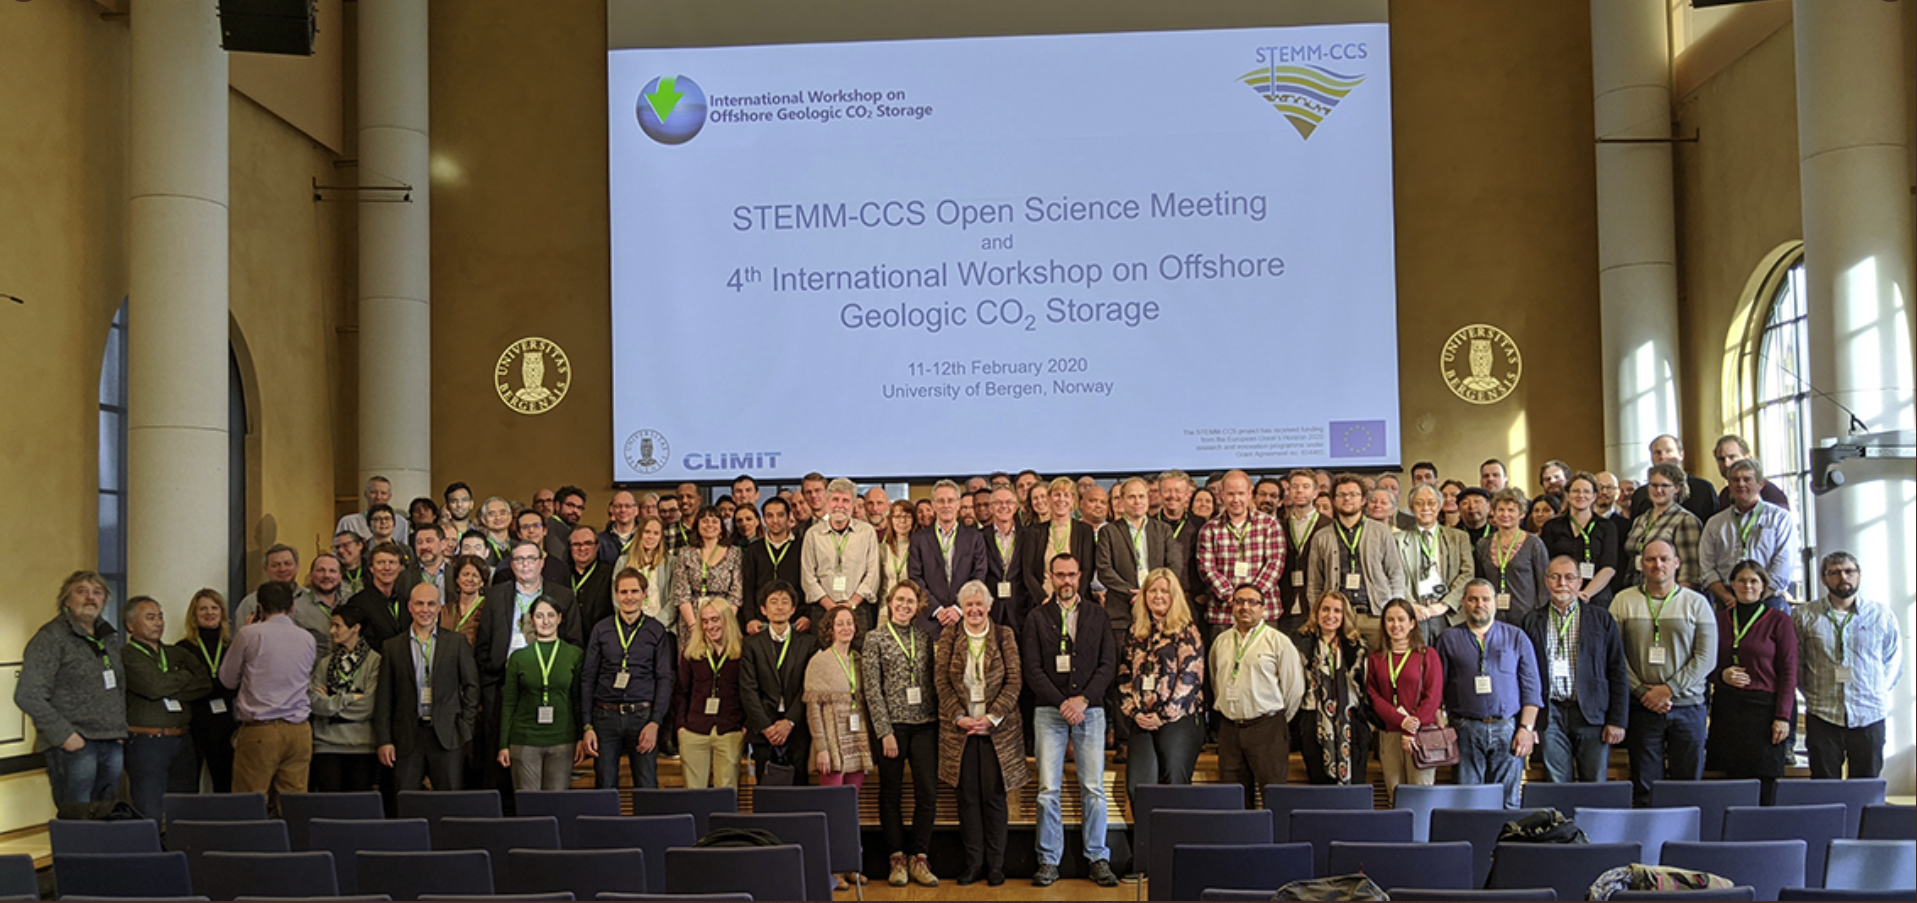 photo of all participants, around 150, at the stem-ccs conference